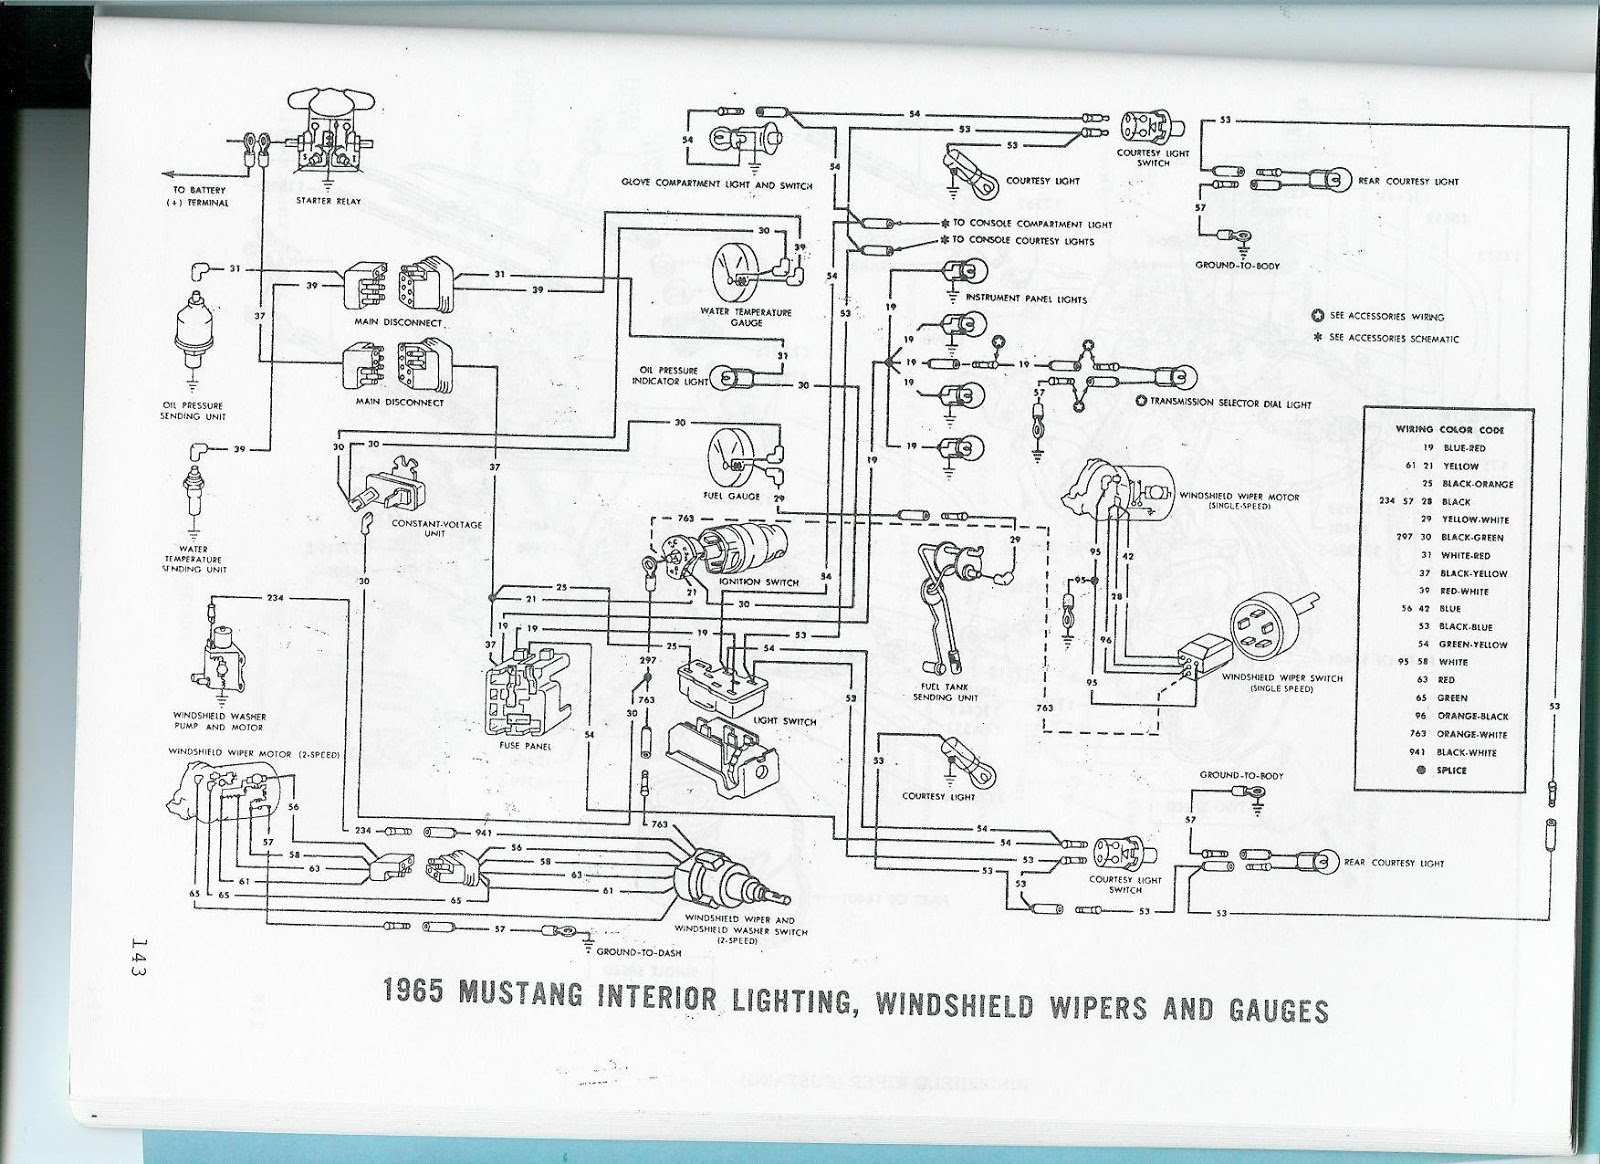 67 gto dash wiring diagram Images Gallery. the care and feeding of ponies  1965 mustang wiring diagrams